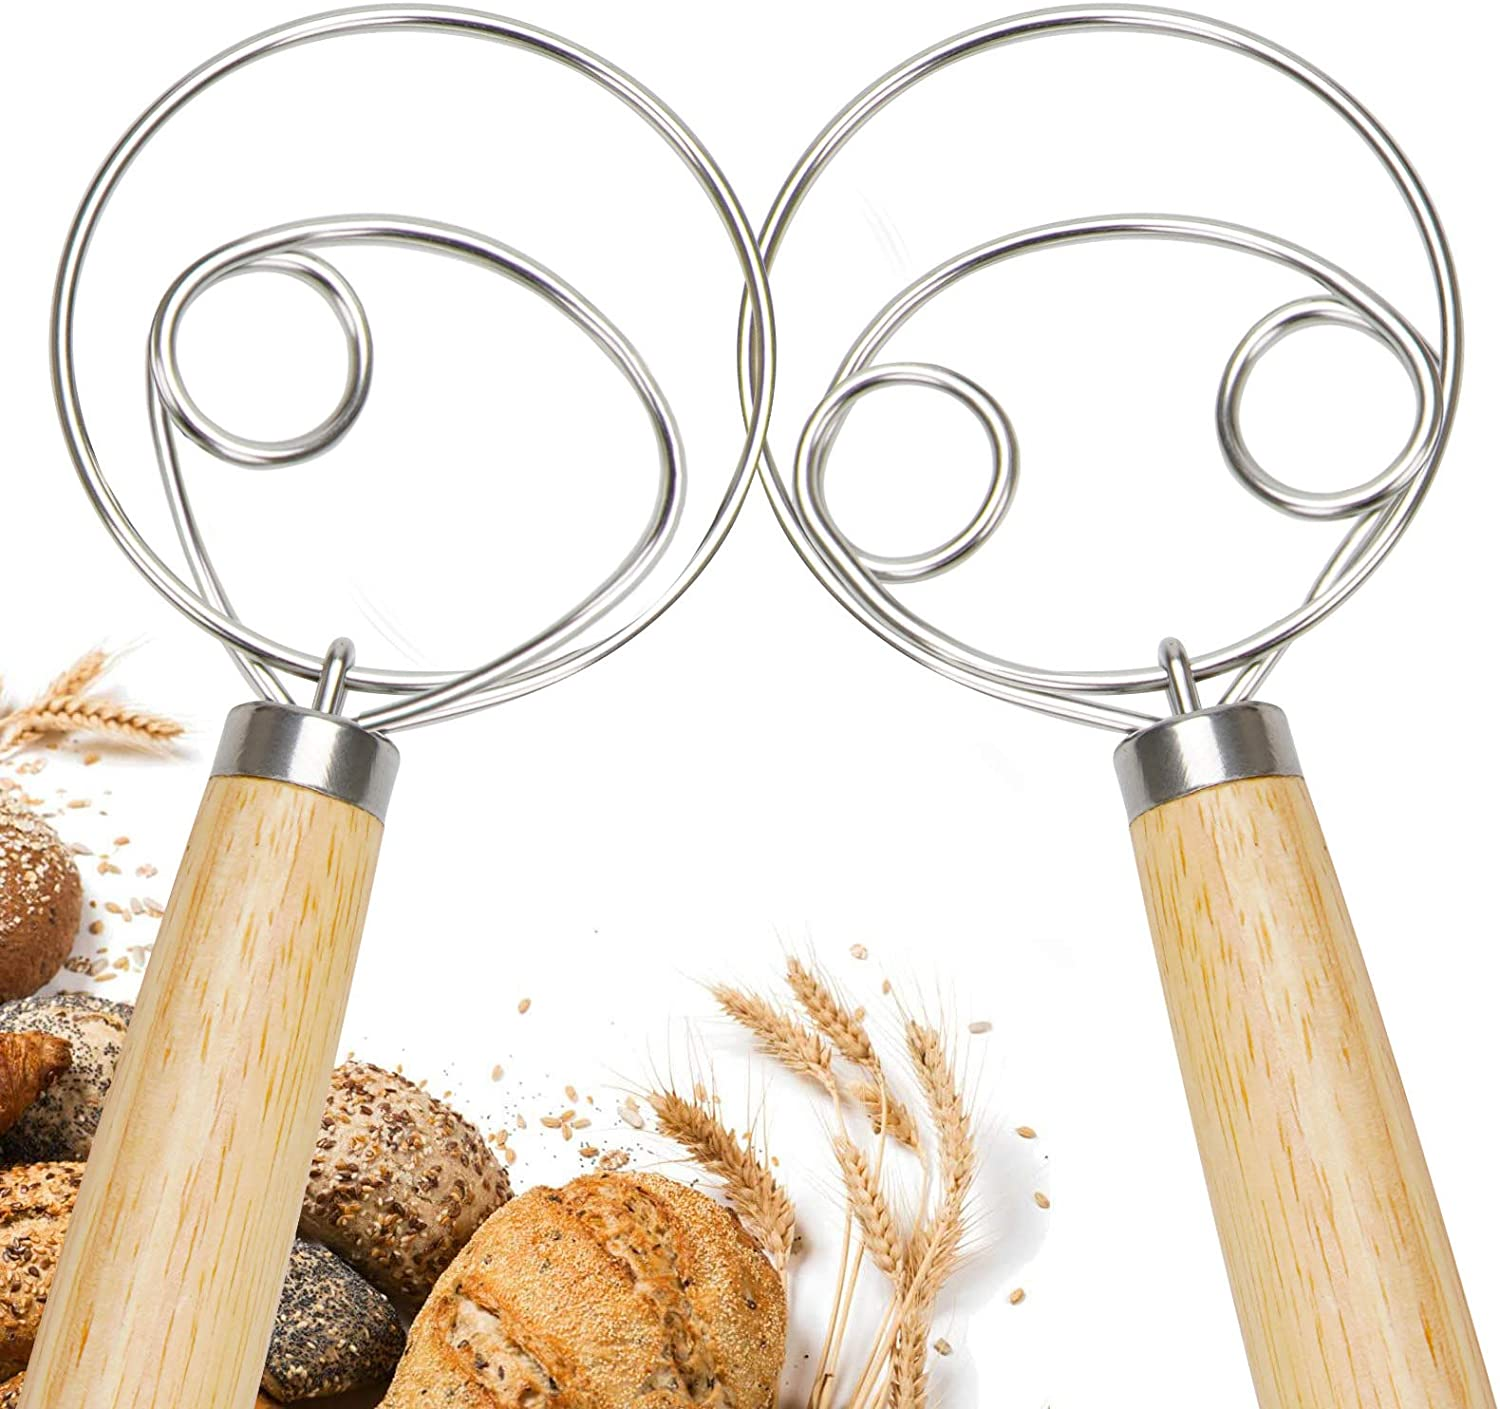 Dough Whisk Bread Mixer And Egg Beater,Stainless Steel,Kitchen Baking Tools Blender For Bread Pastry Pizza Making 2 Pack